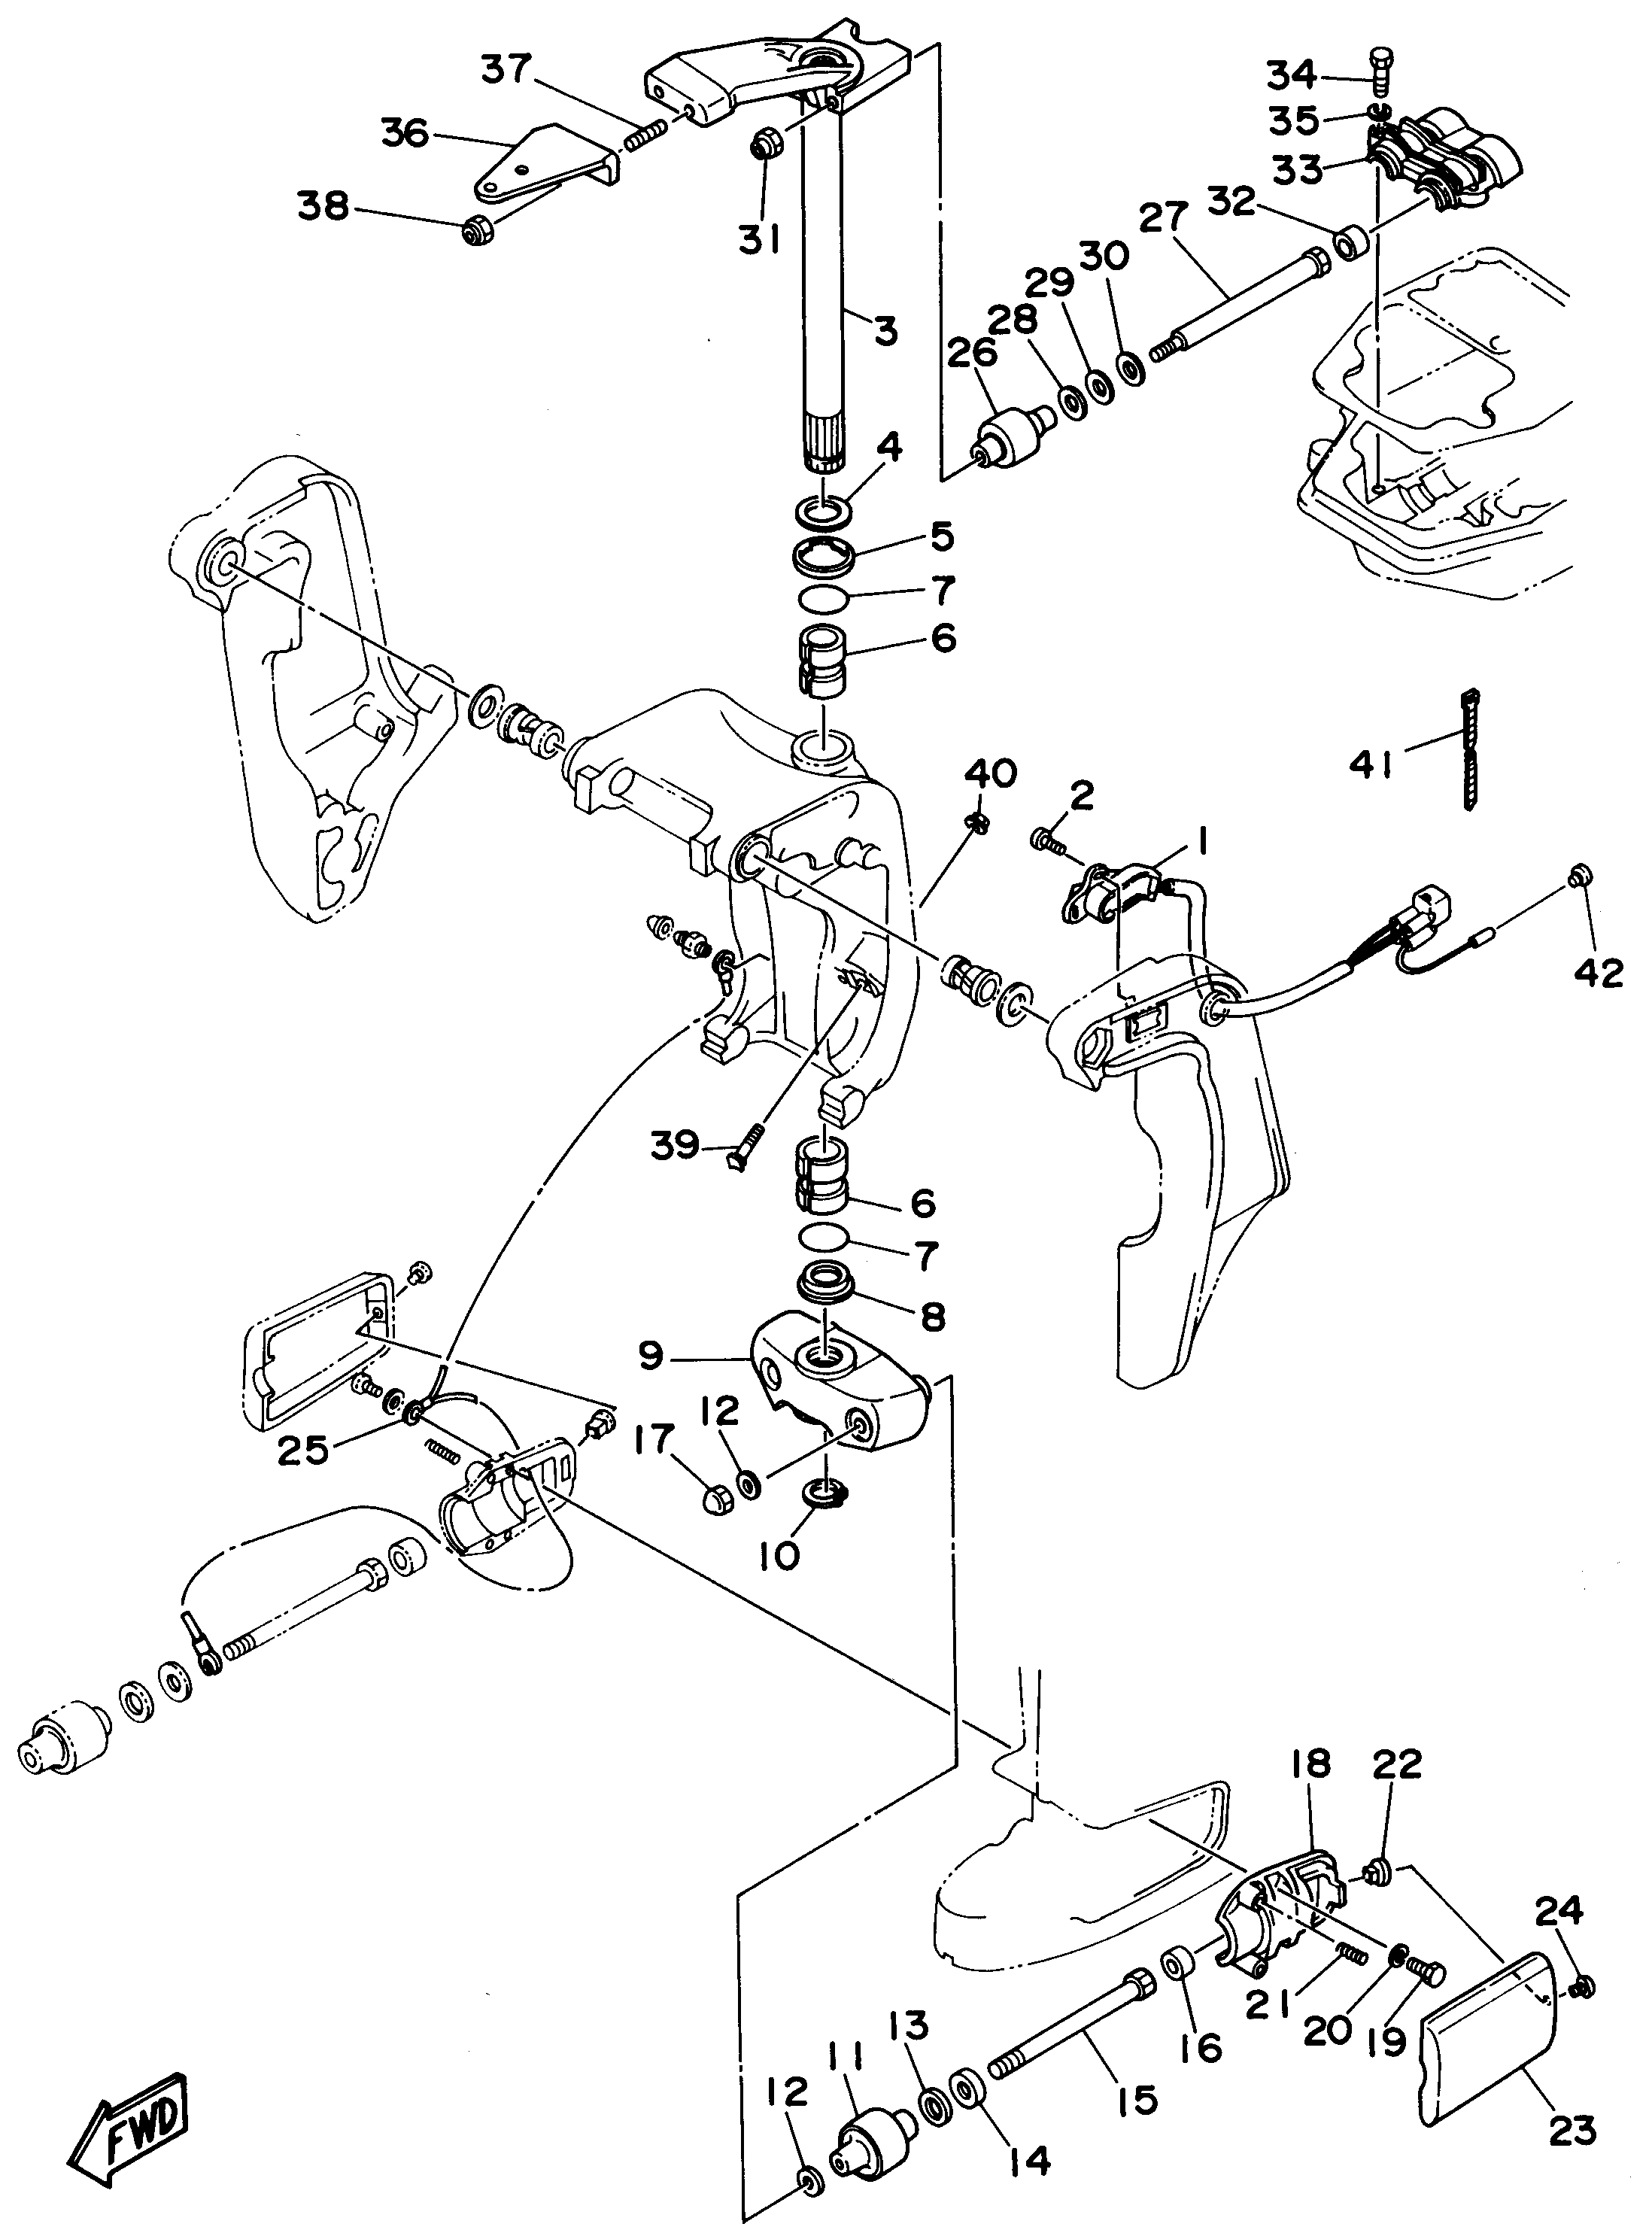 Hp Evinrude Wiring Diagram Hp Mercury Outboard Wiring Diagram 7 5 Hp